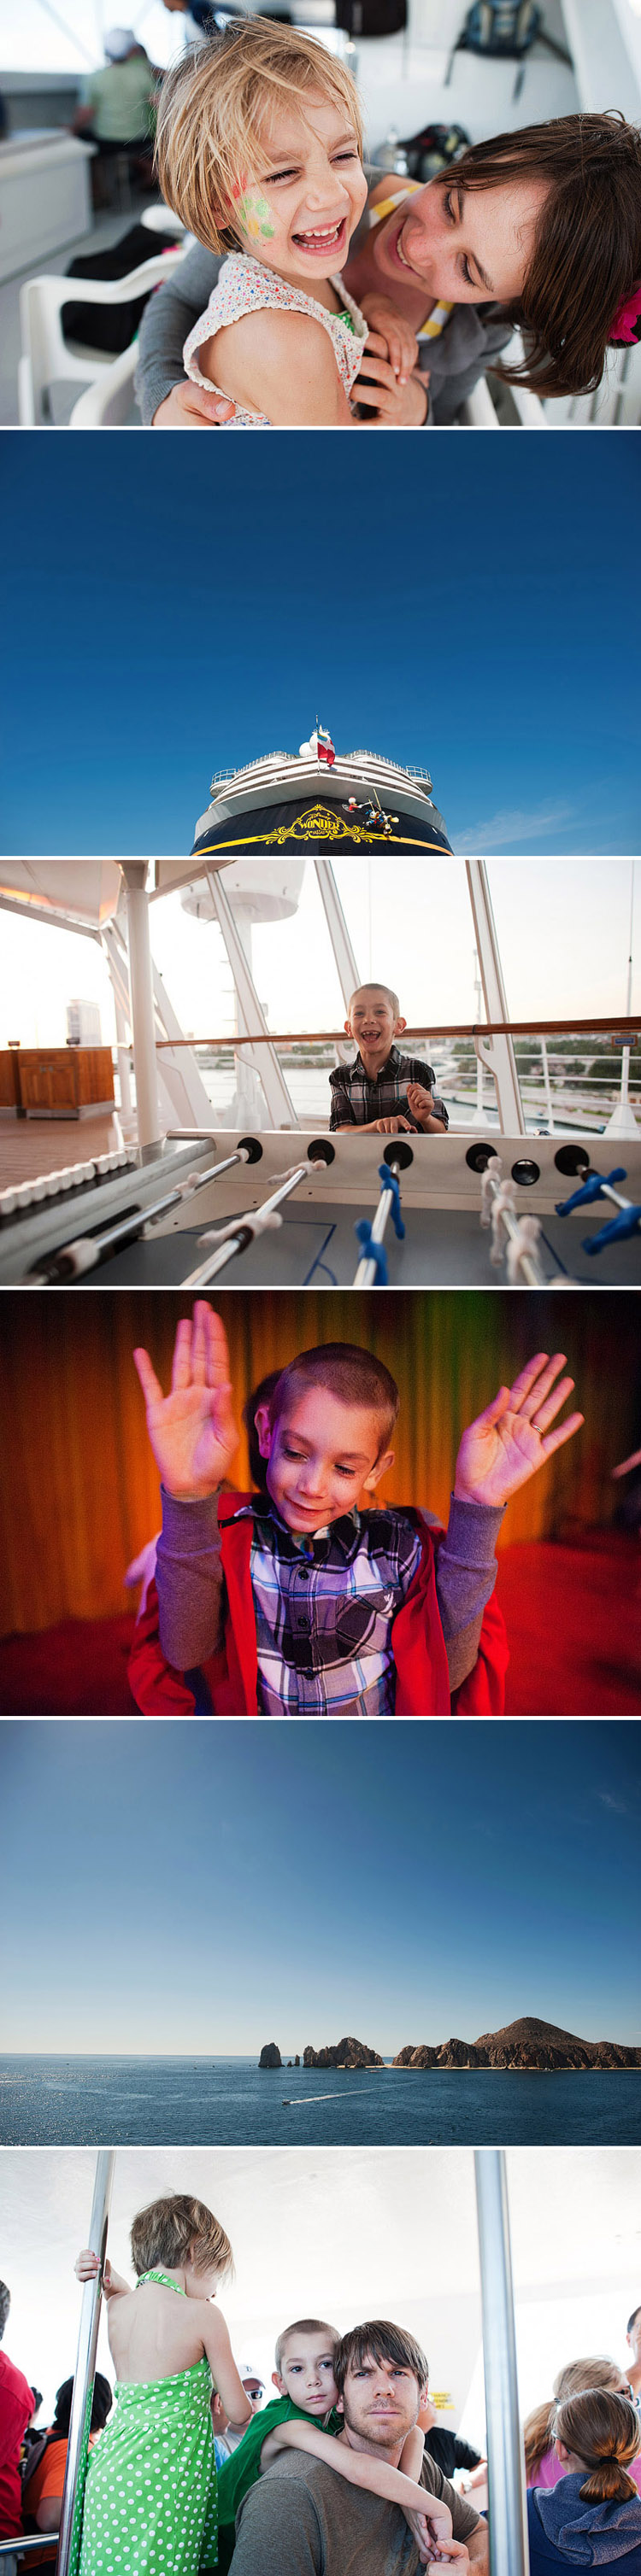 Fun on board the Mexican Riviera Disney Cruise.